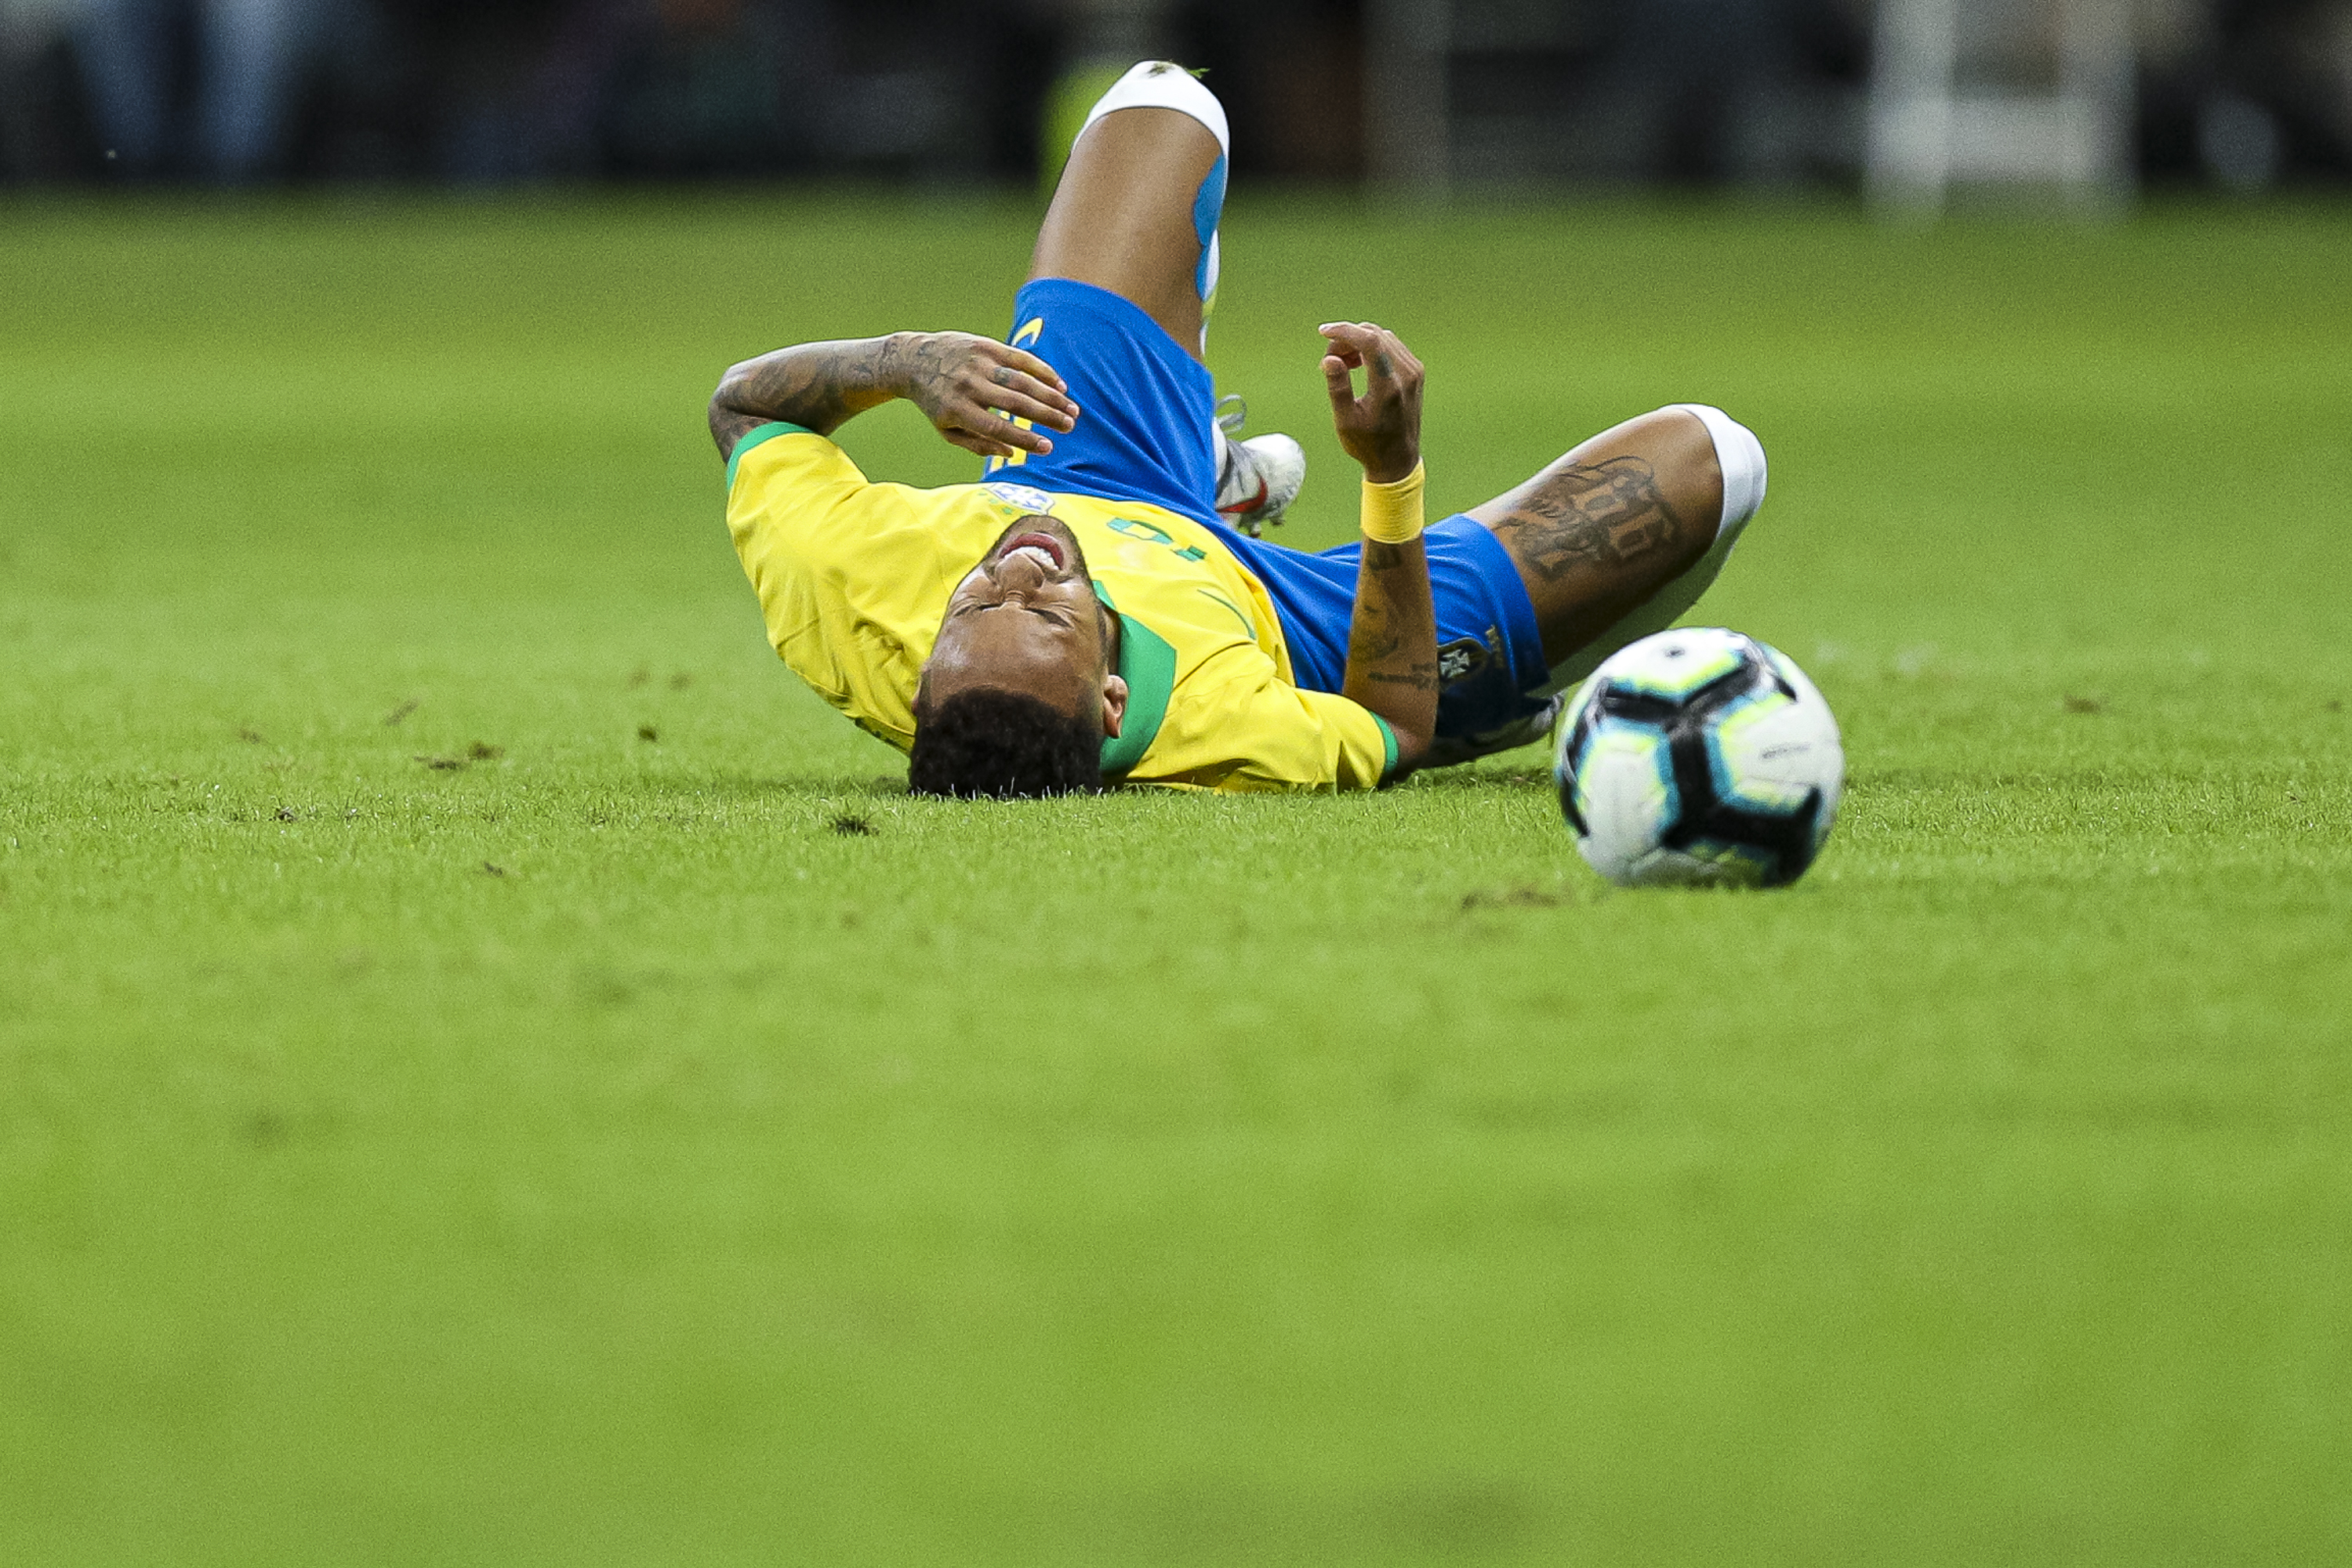 'You do not weaken without him': Alves says Brazil remains strong without Neymar